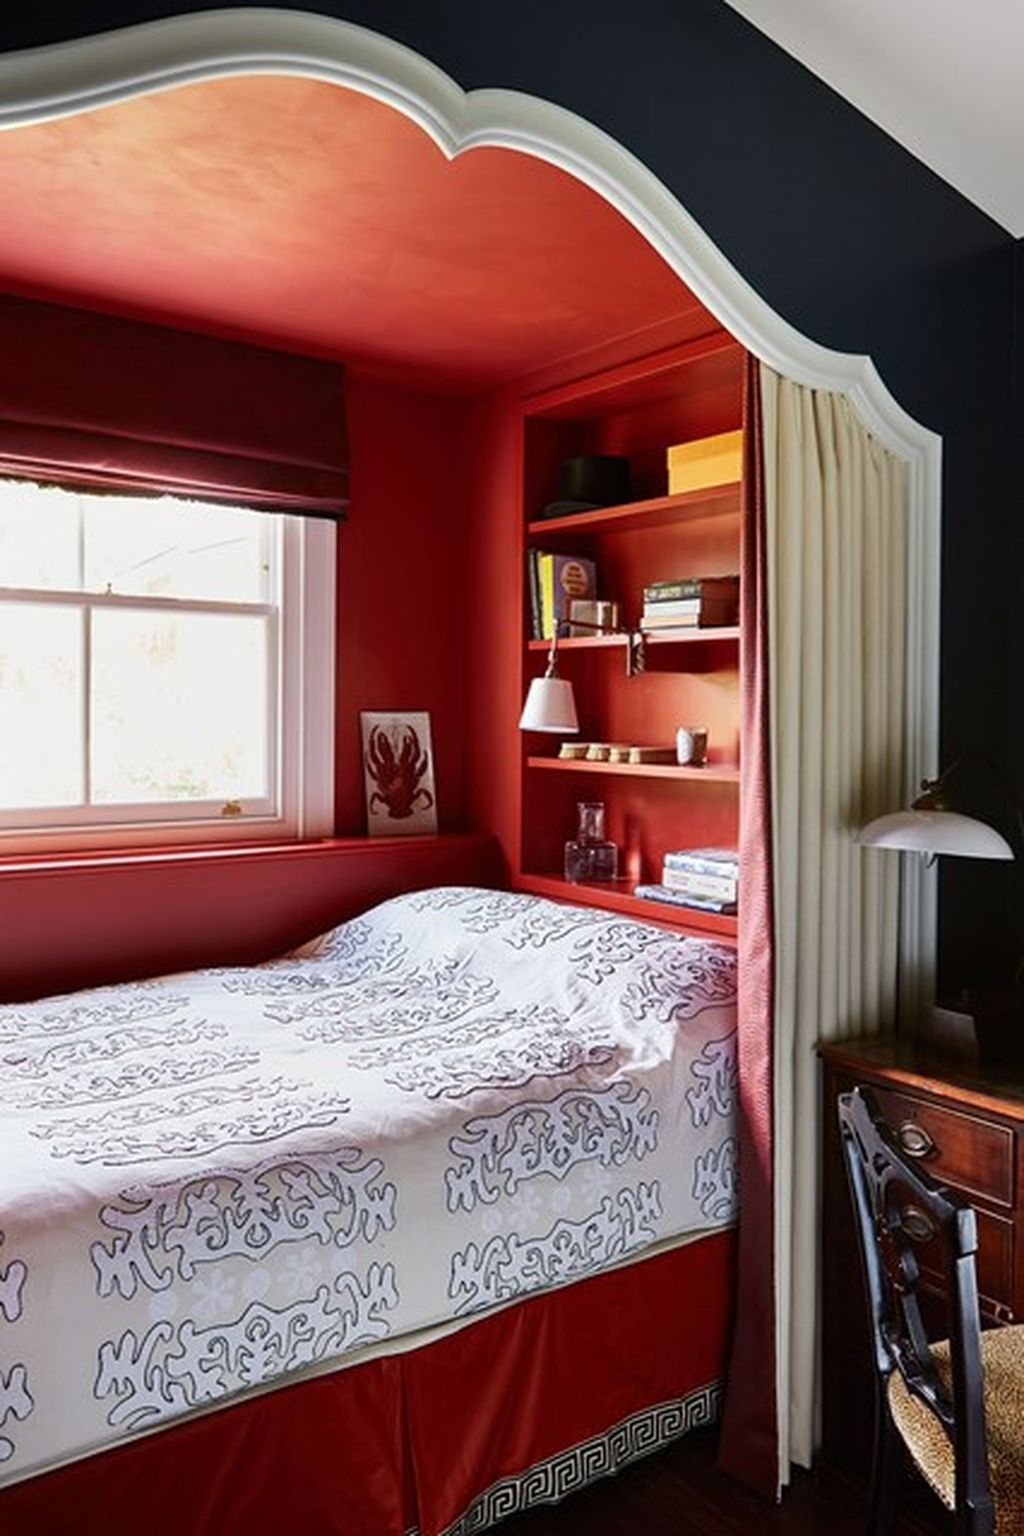 Cute boys bedroom design ideas for small space 23 - Cute small bedroom ideas ...